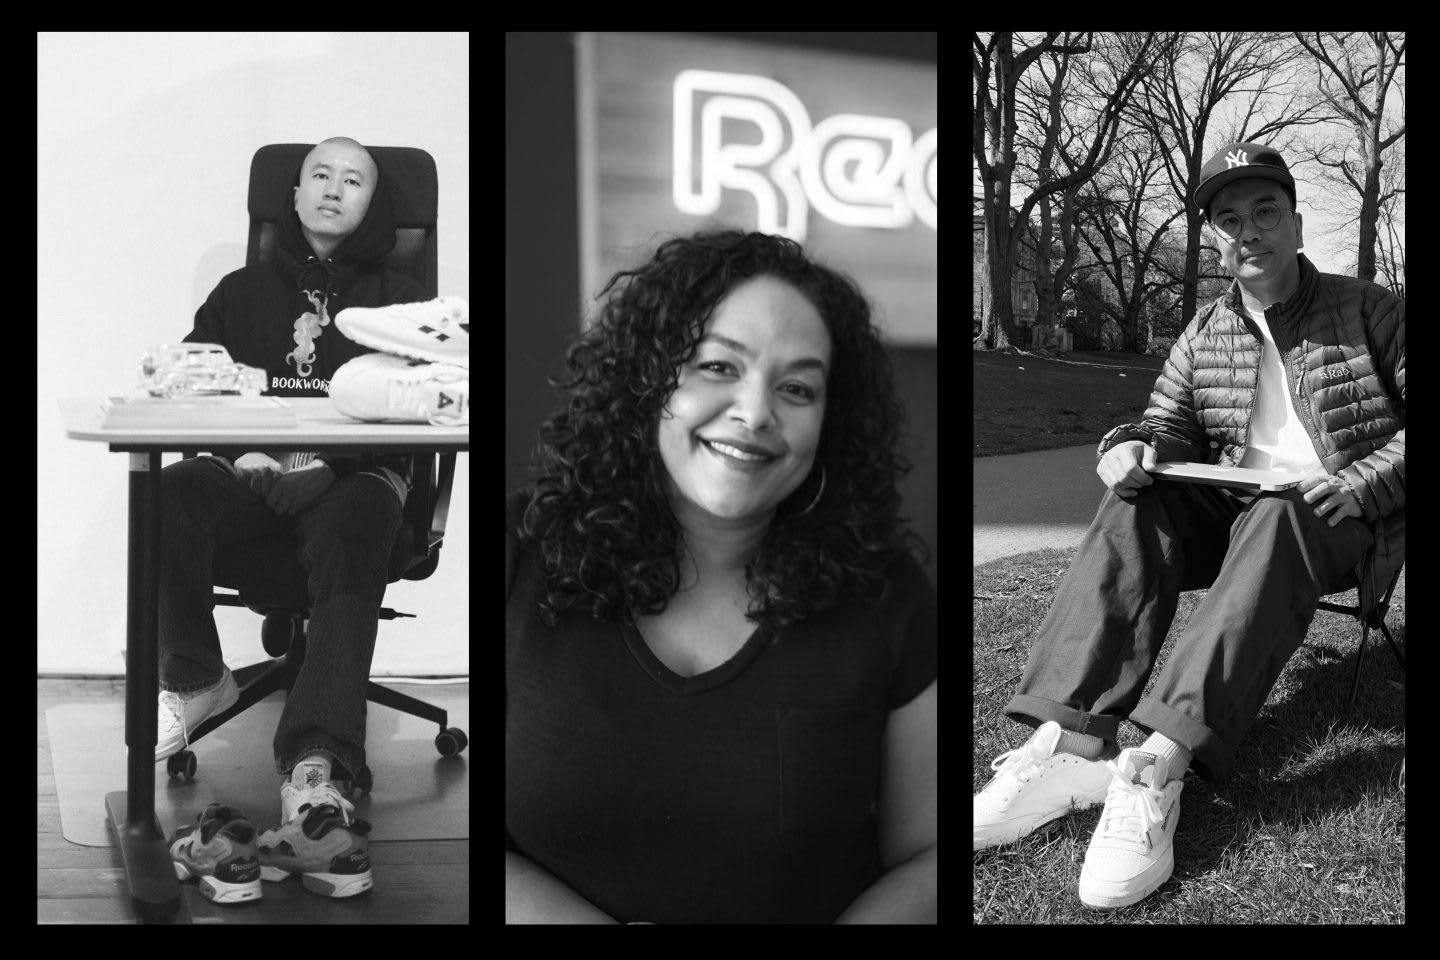 Reebok employees from the fashion collaborations team, James Chan, Carmen Hardaway, Leo Gamboa, teamwork, team, collaboration